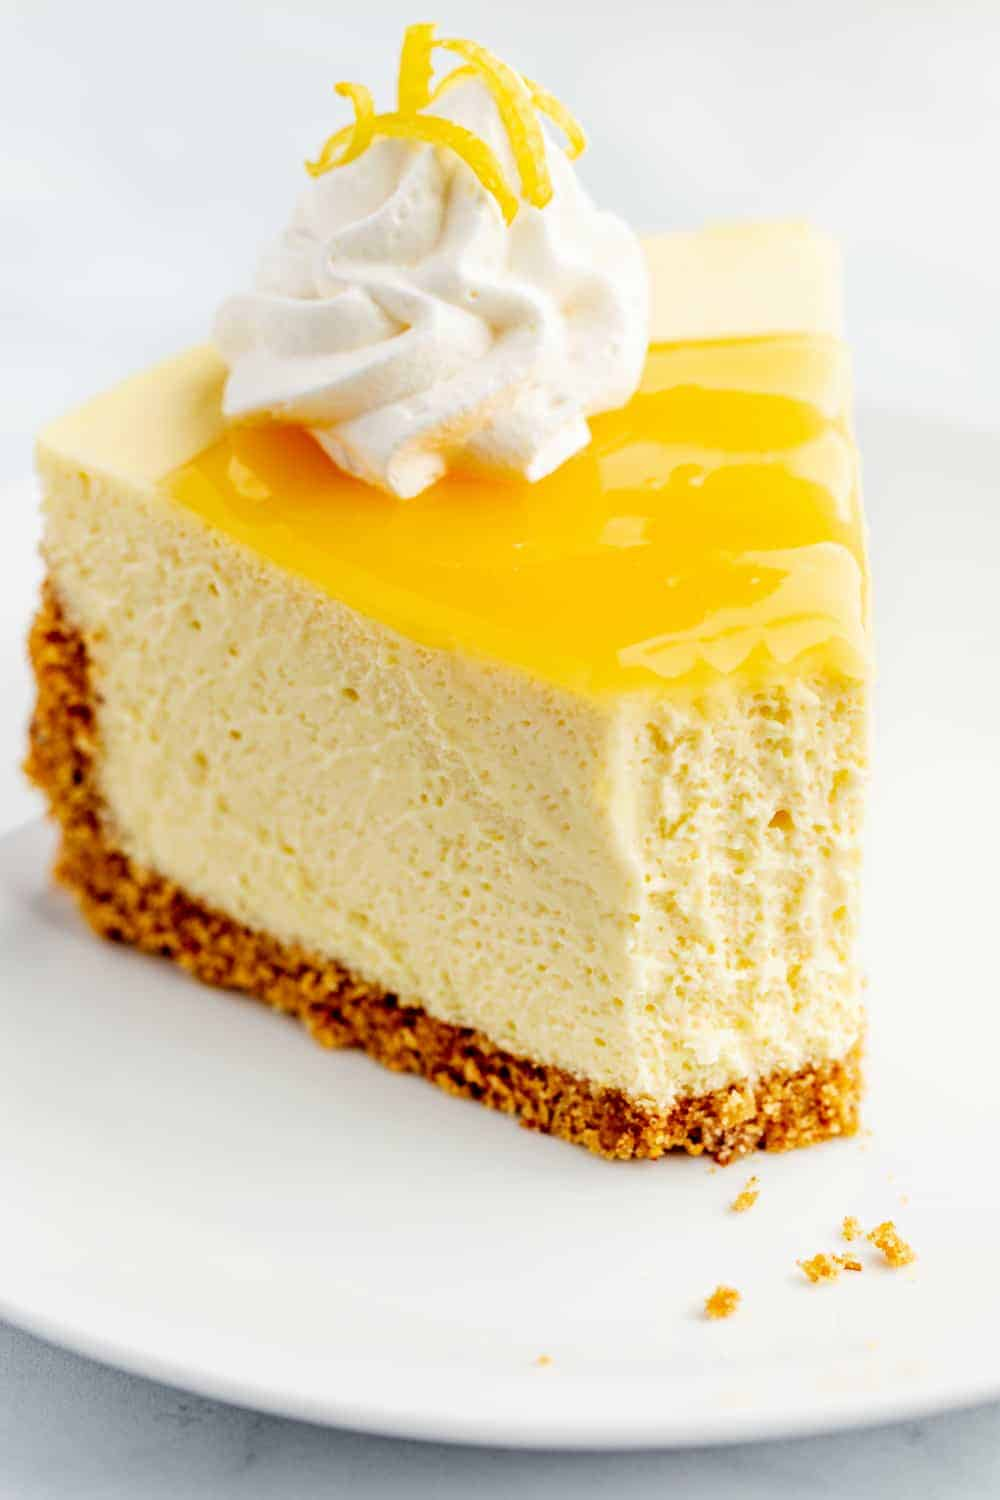 Slice of lemon cheesecake with a bite taken